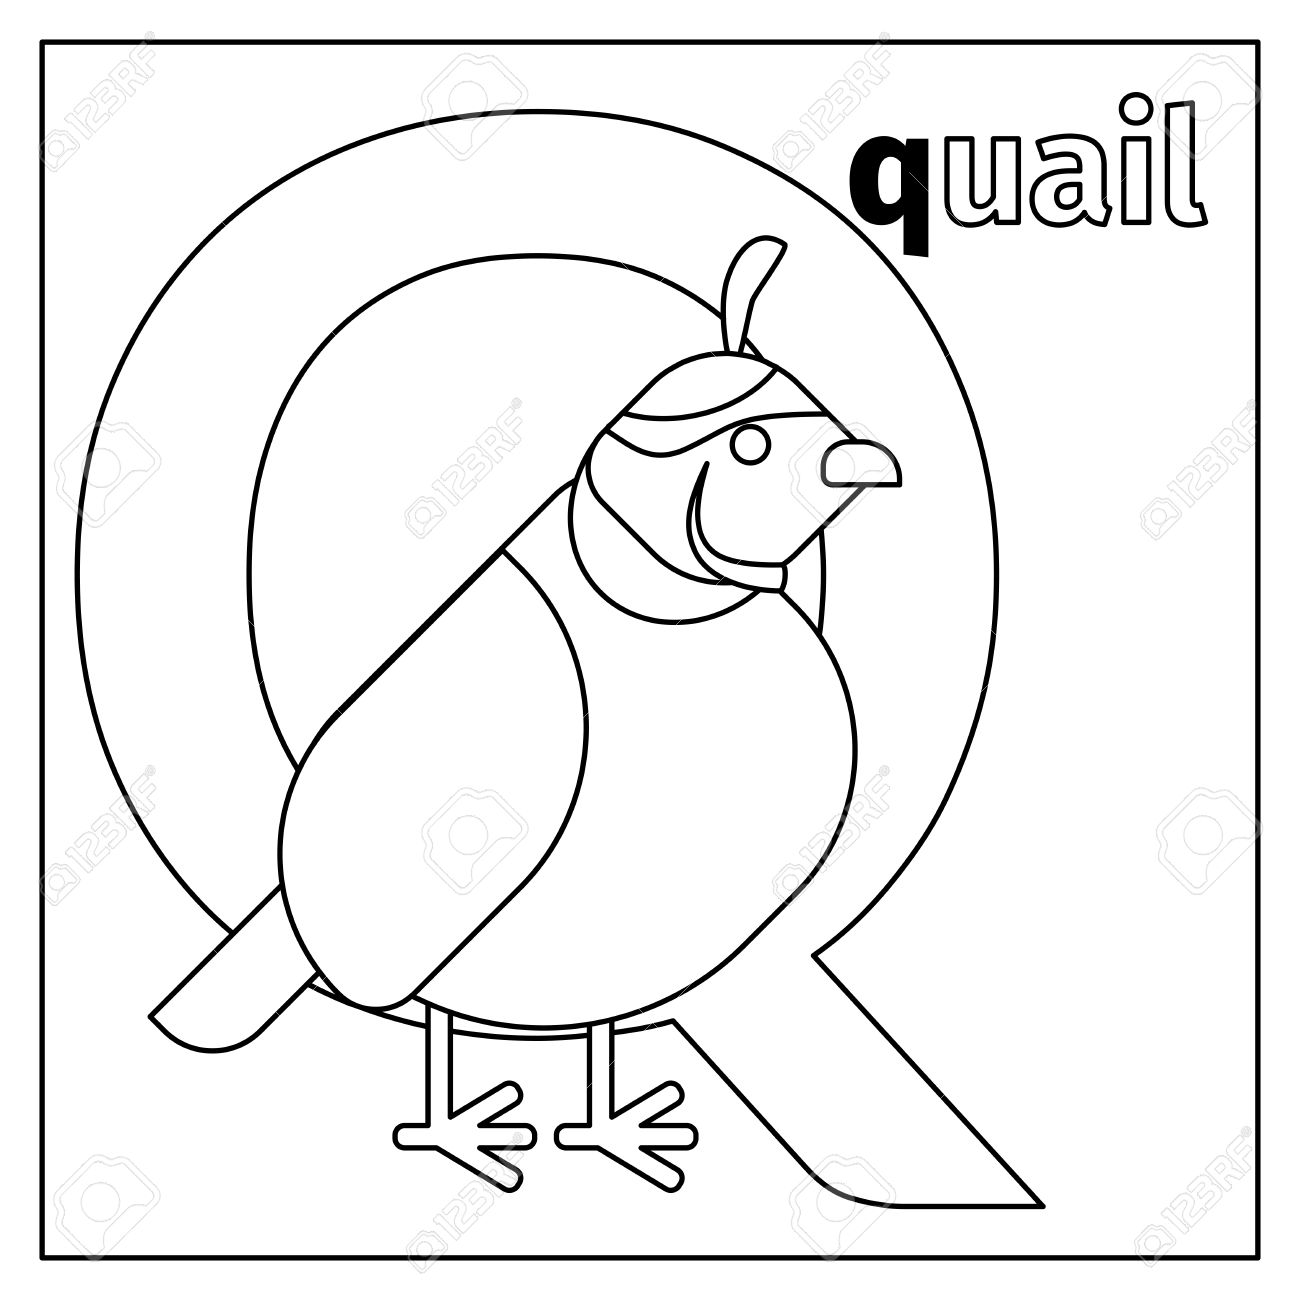 Coloring page or card for kids with english animals zoo alphabet